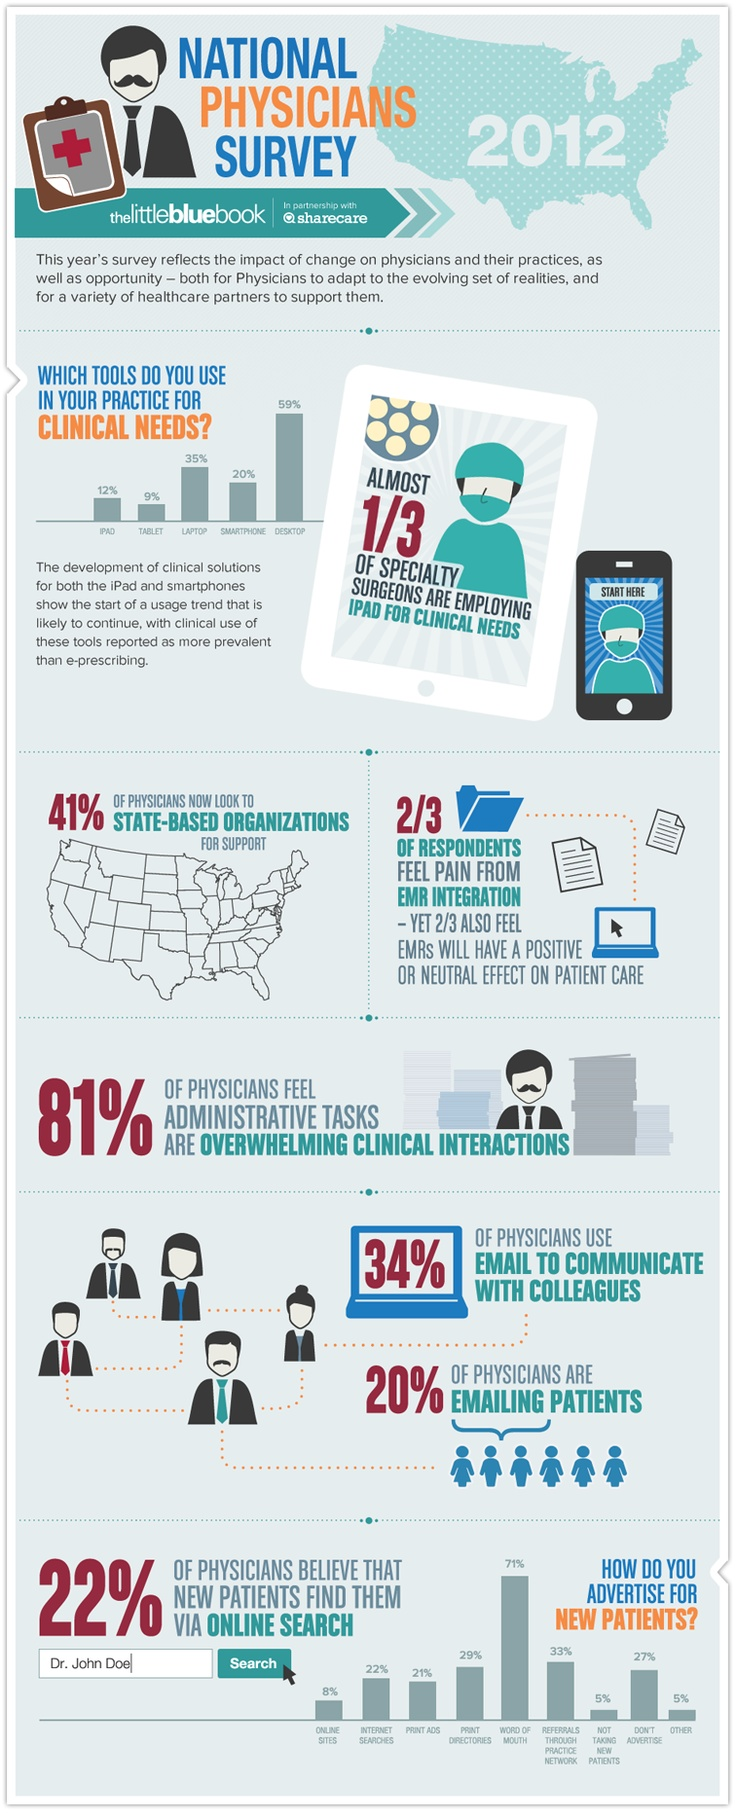 Valuable stats and facts re: physicians, technology, social media and growing their practices. The Little Blue Book 2012 Physicians Survey| Keeping Physicians Connected